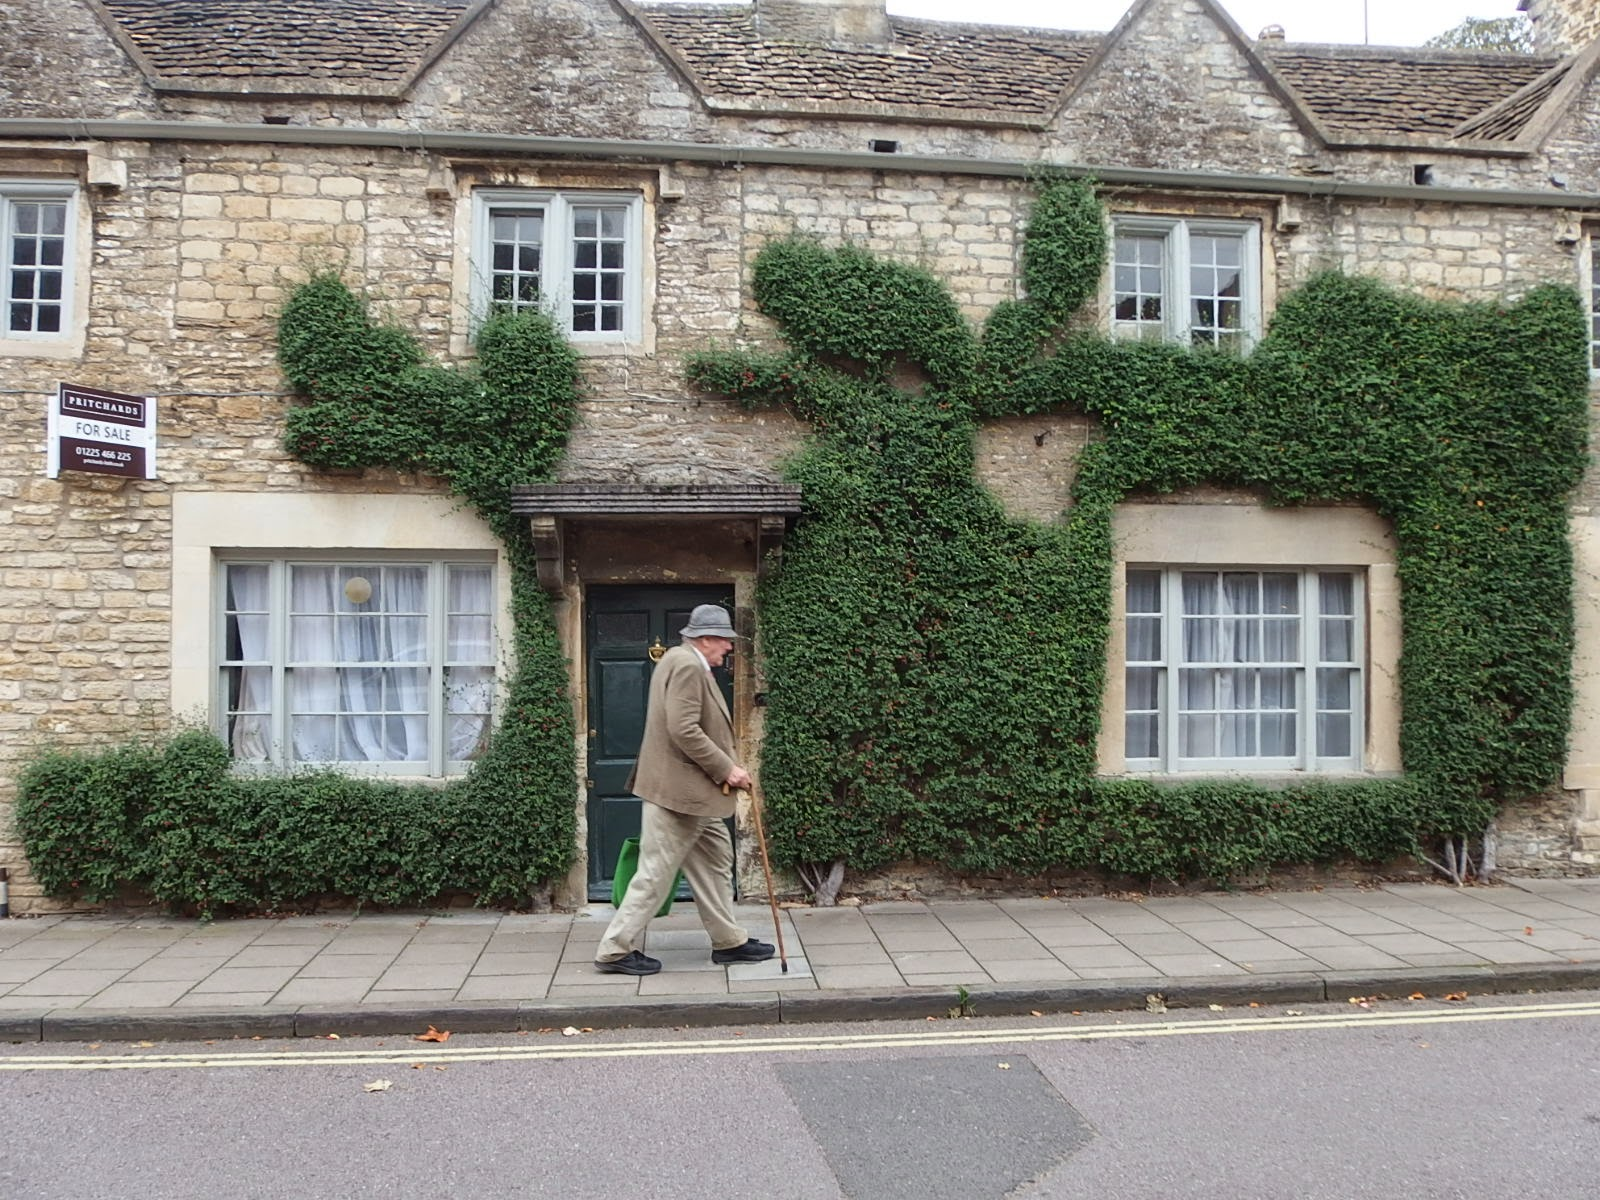 Photo of 3 cotoneaster shrubs clothing a building on Corsham High Street